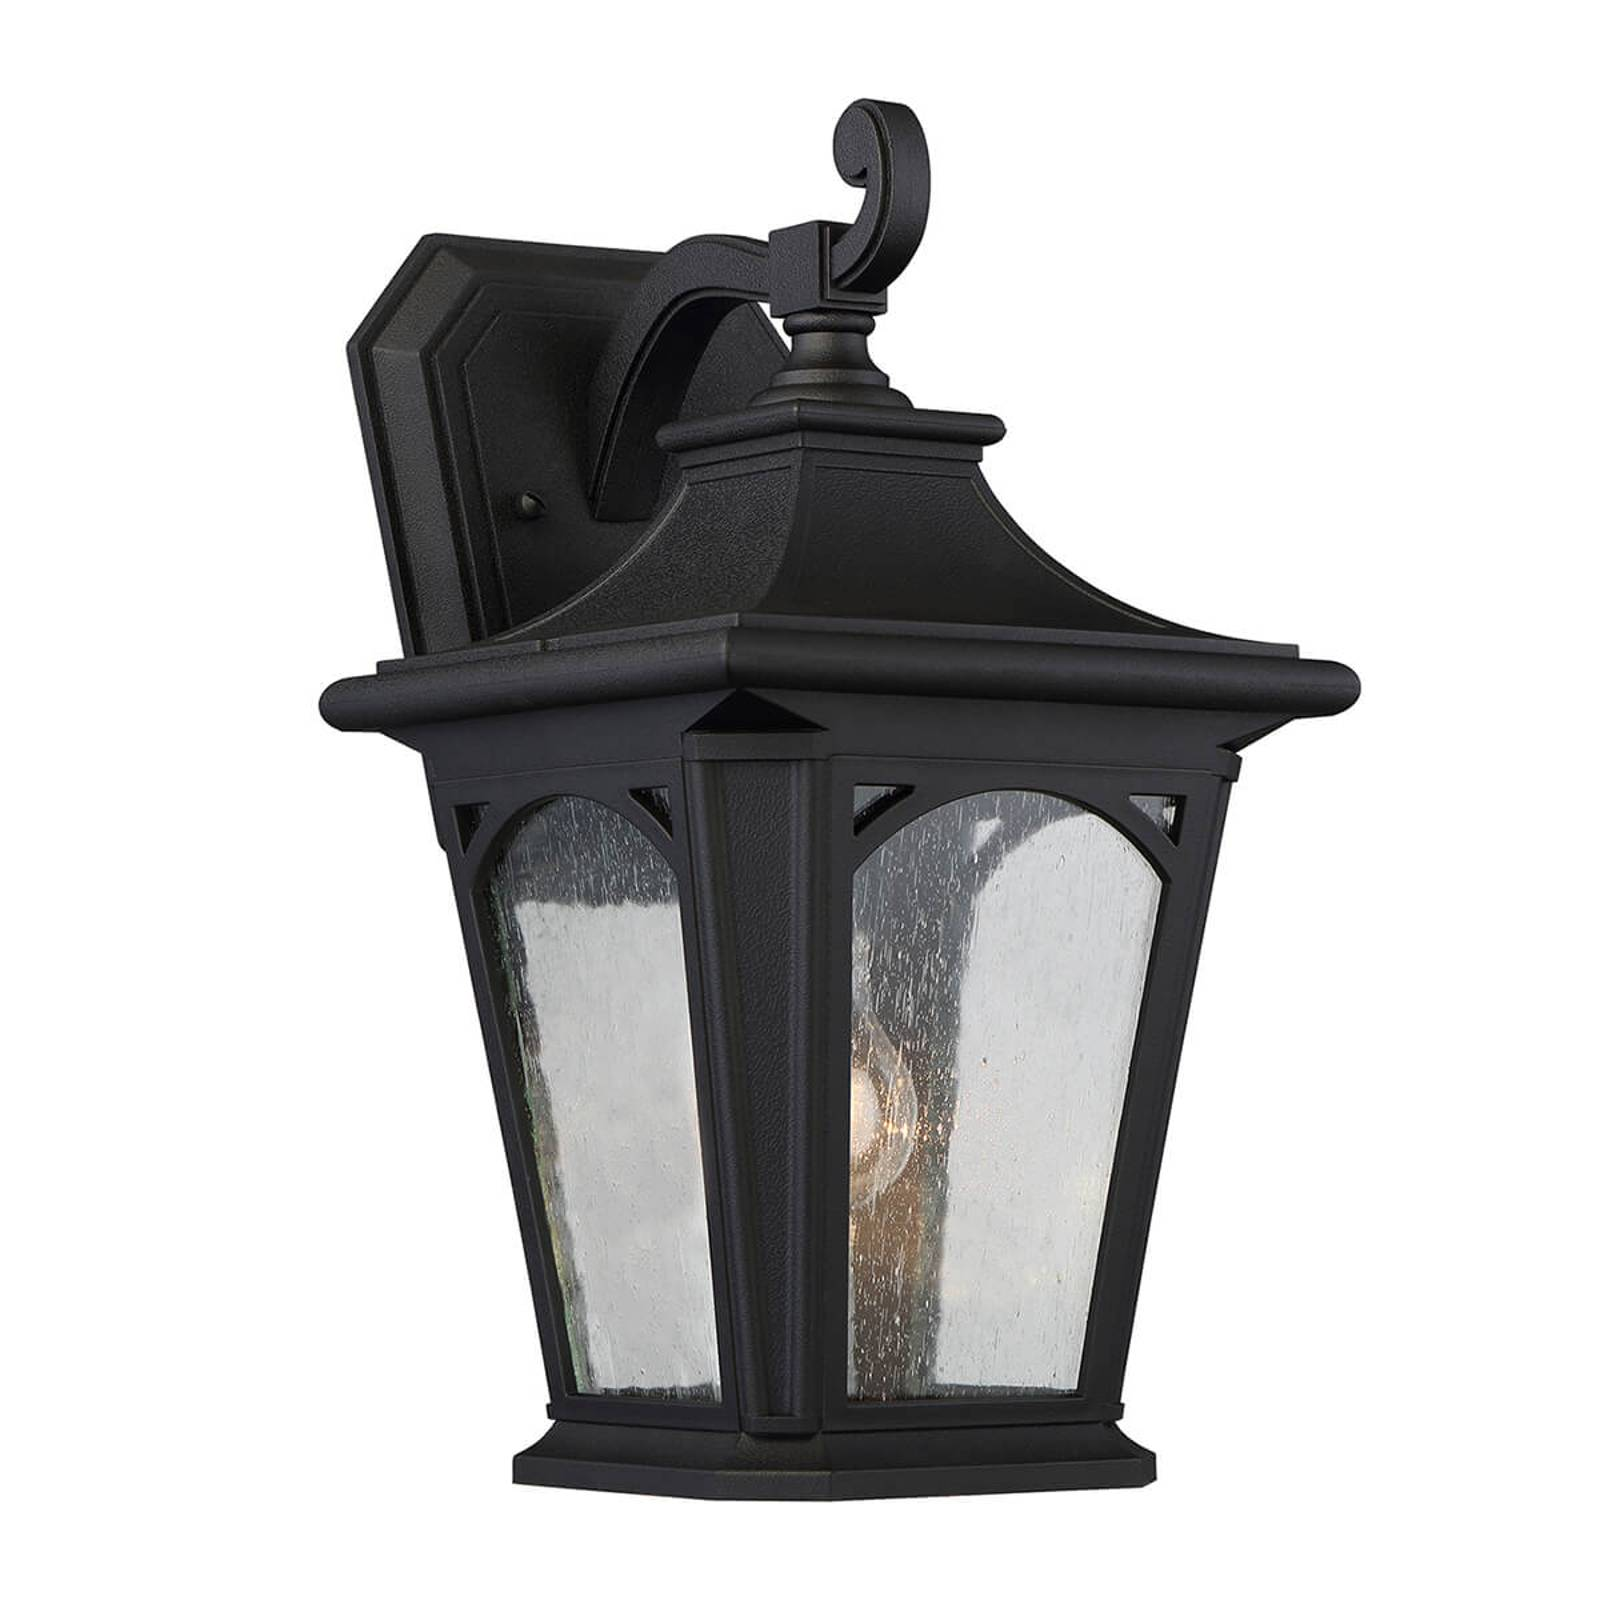 Bedford medium - wall light for the outdoors from QUOIZEL